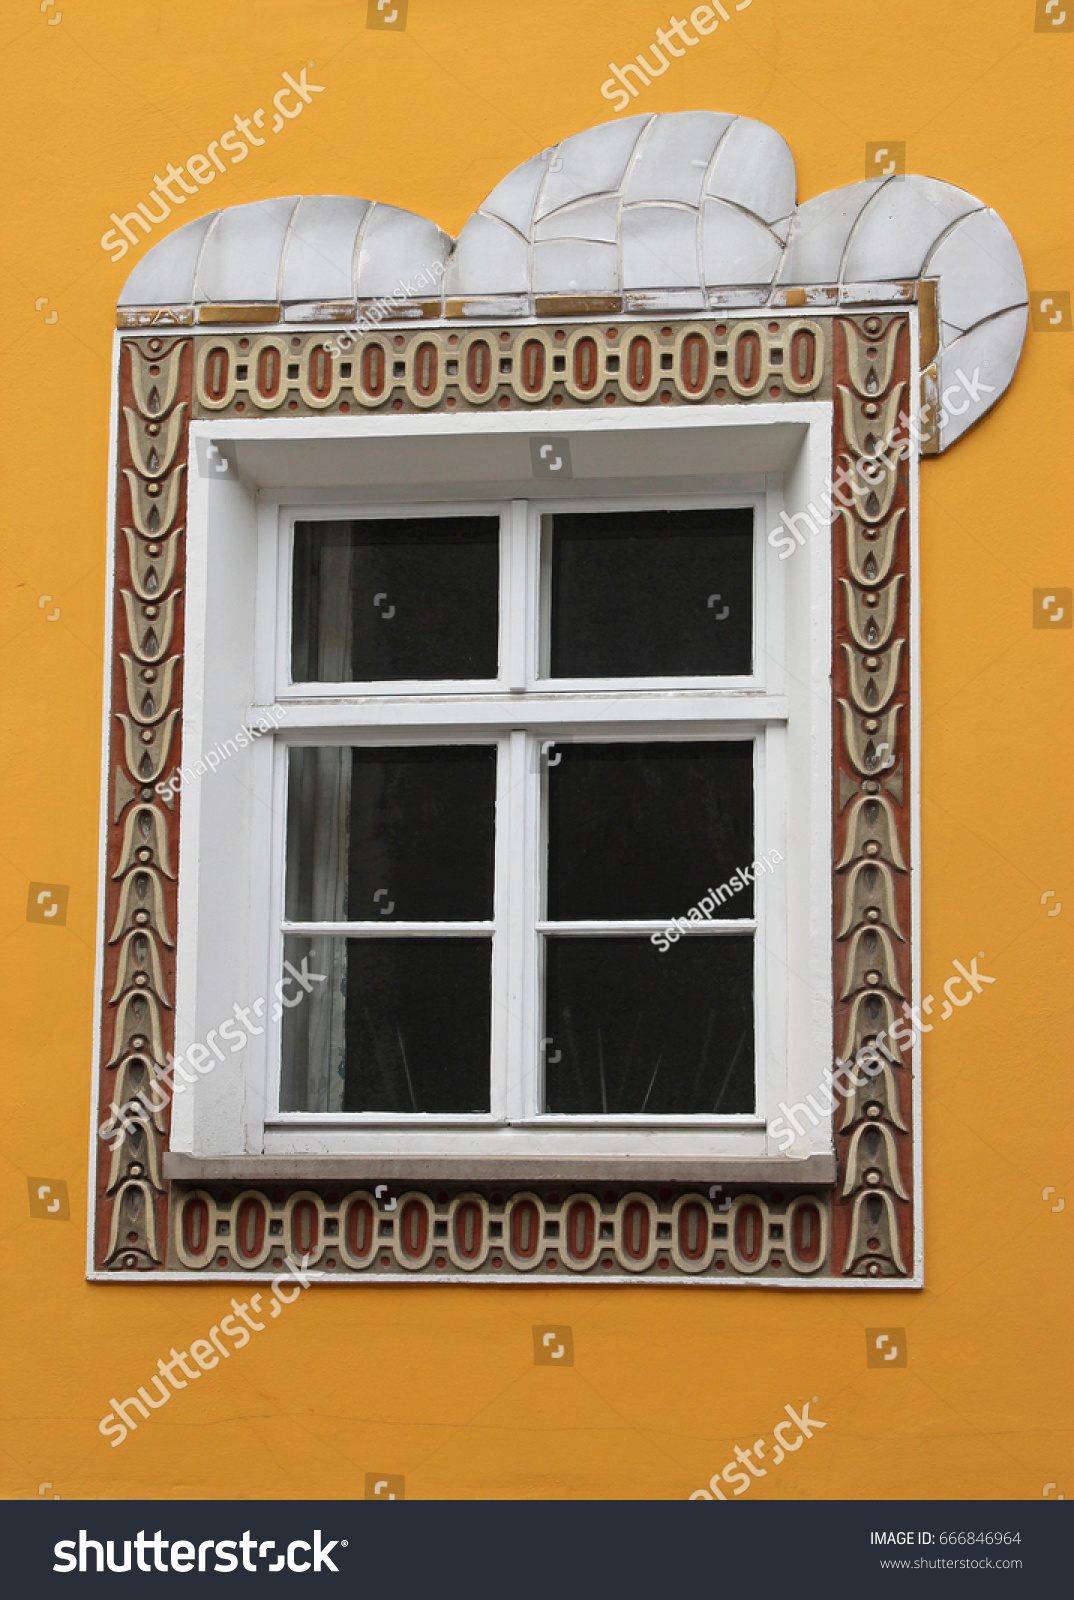 Art Nouveau Yellow Art Nouveau Ornaments Around Window Yellow Stock Photo Edit Now